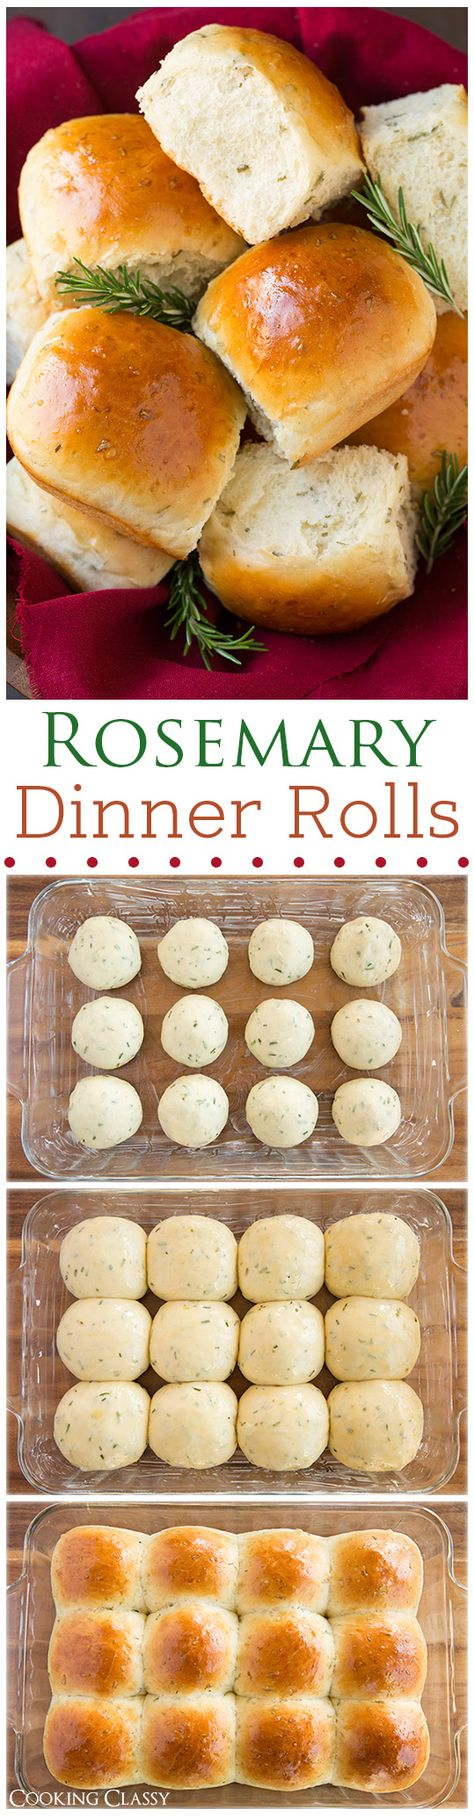 Rosemary dinner rolls . . . would these work as breadsticks?